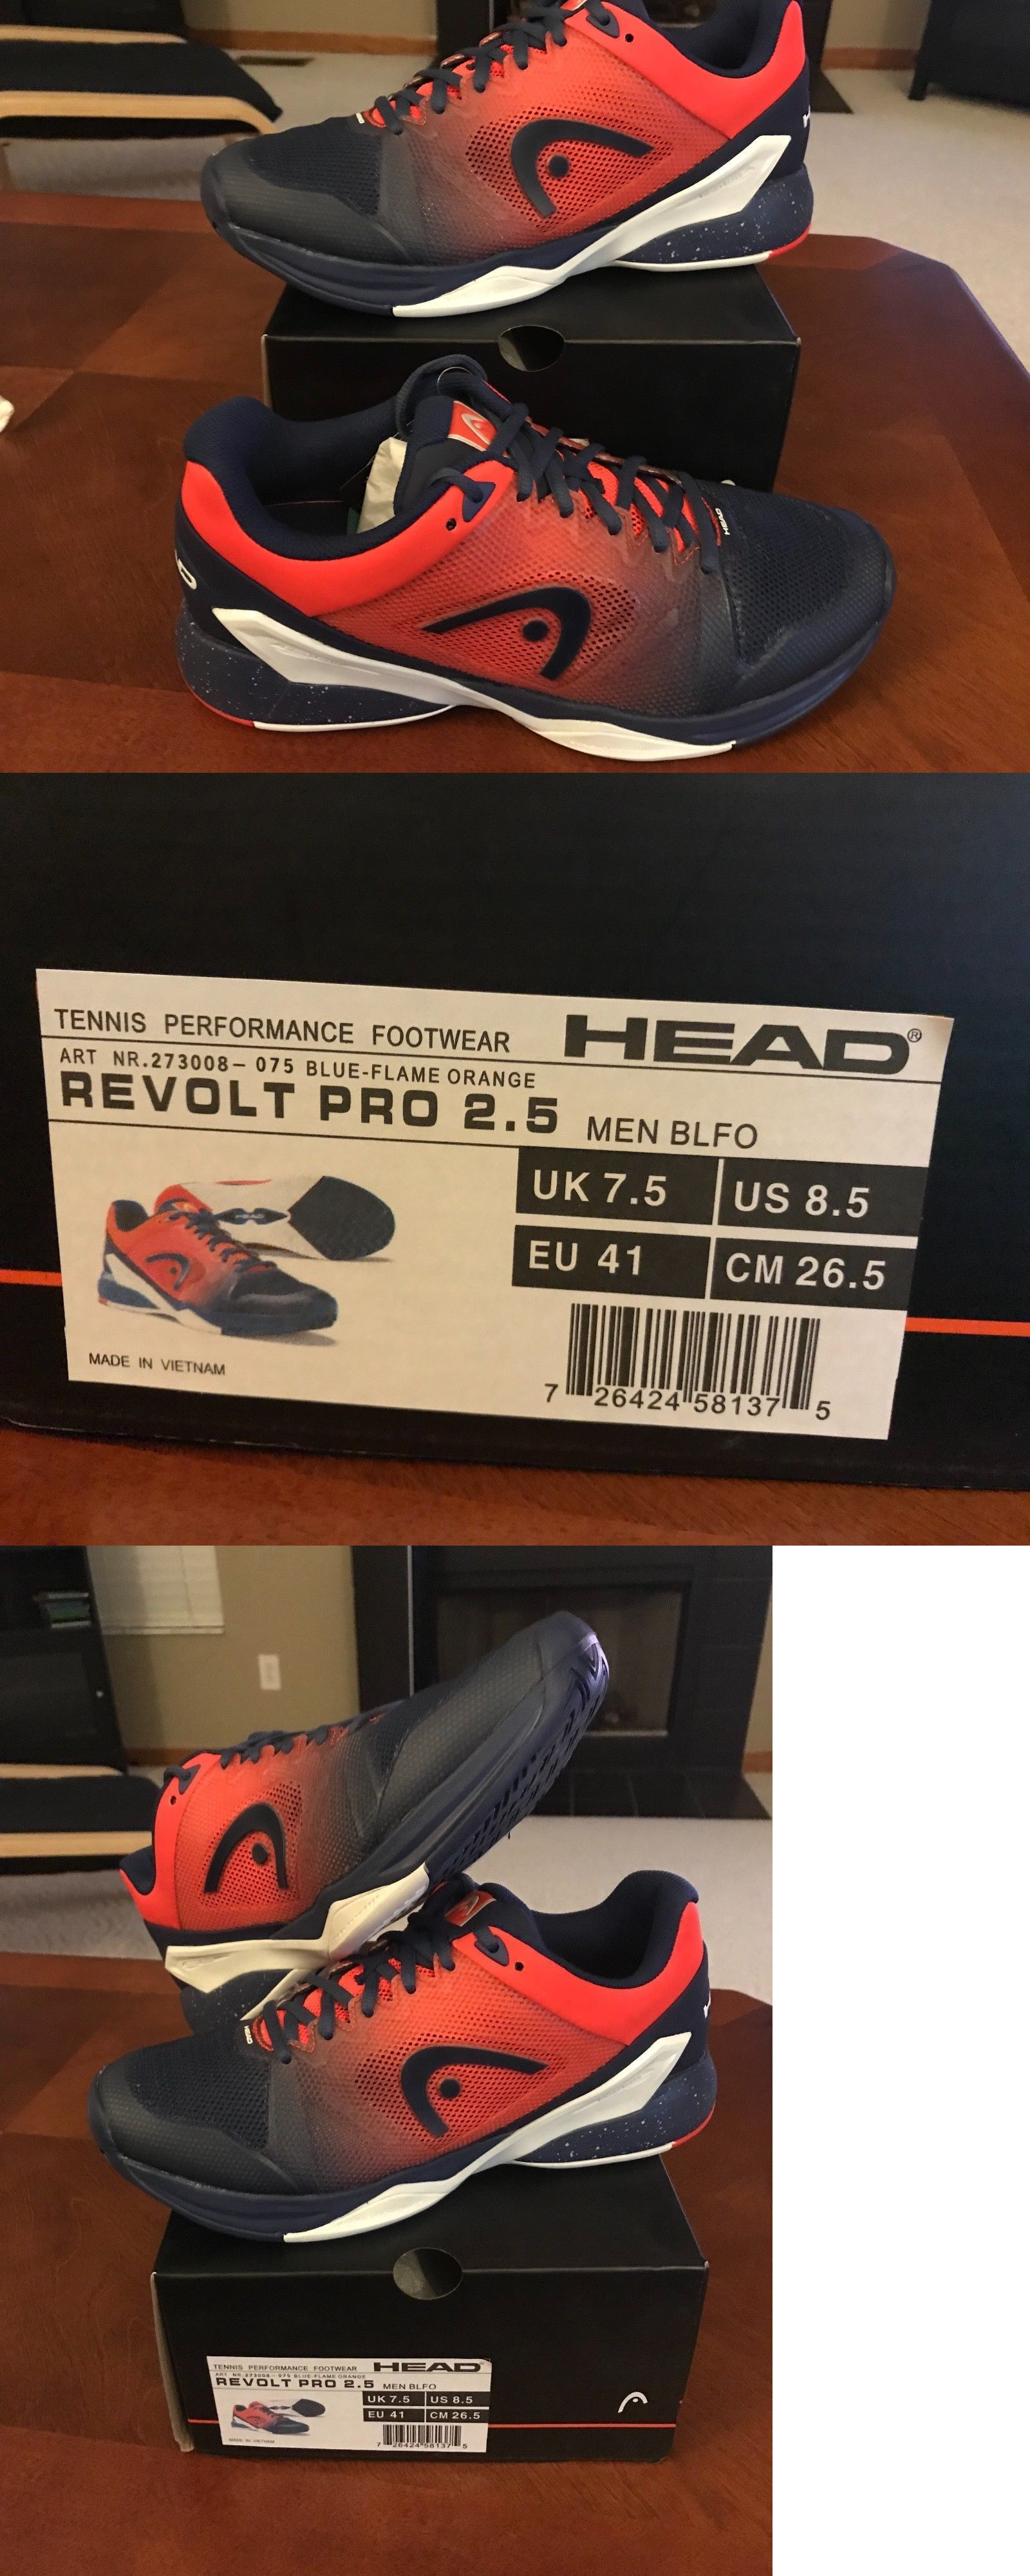 ac39e8996 Clothing Shoes and Accessories 62229  Head Revolt Pro 2.5 Men S Blue Flame  Orange Size 8.5 -  BUY IT NOW ONLY   50 on eBay!